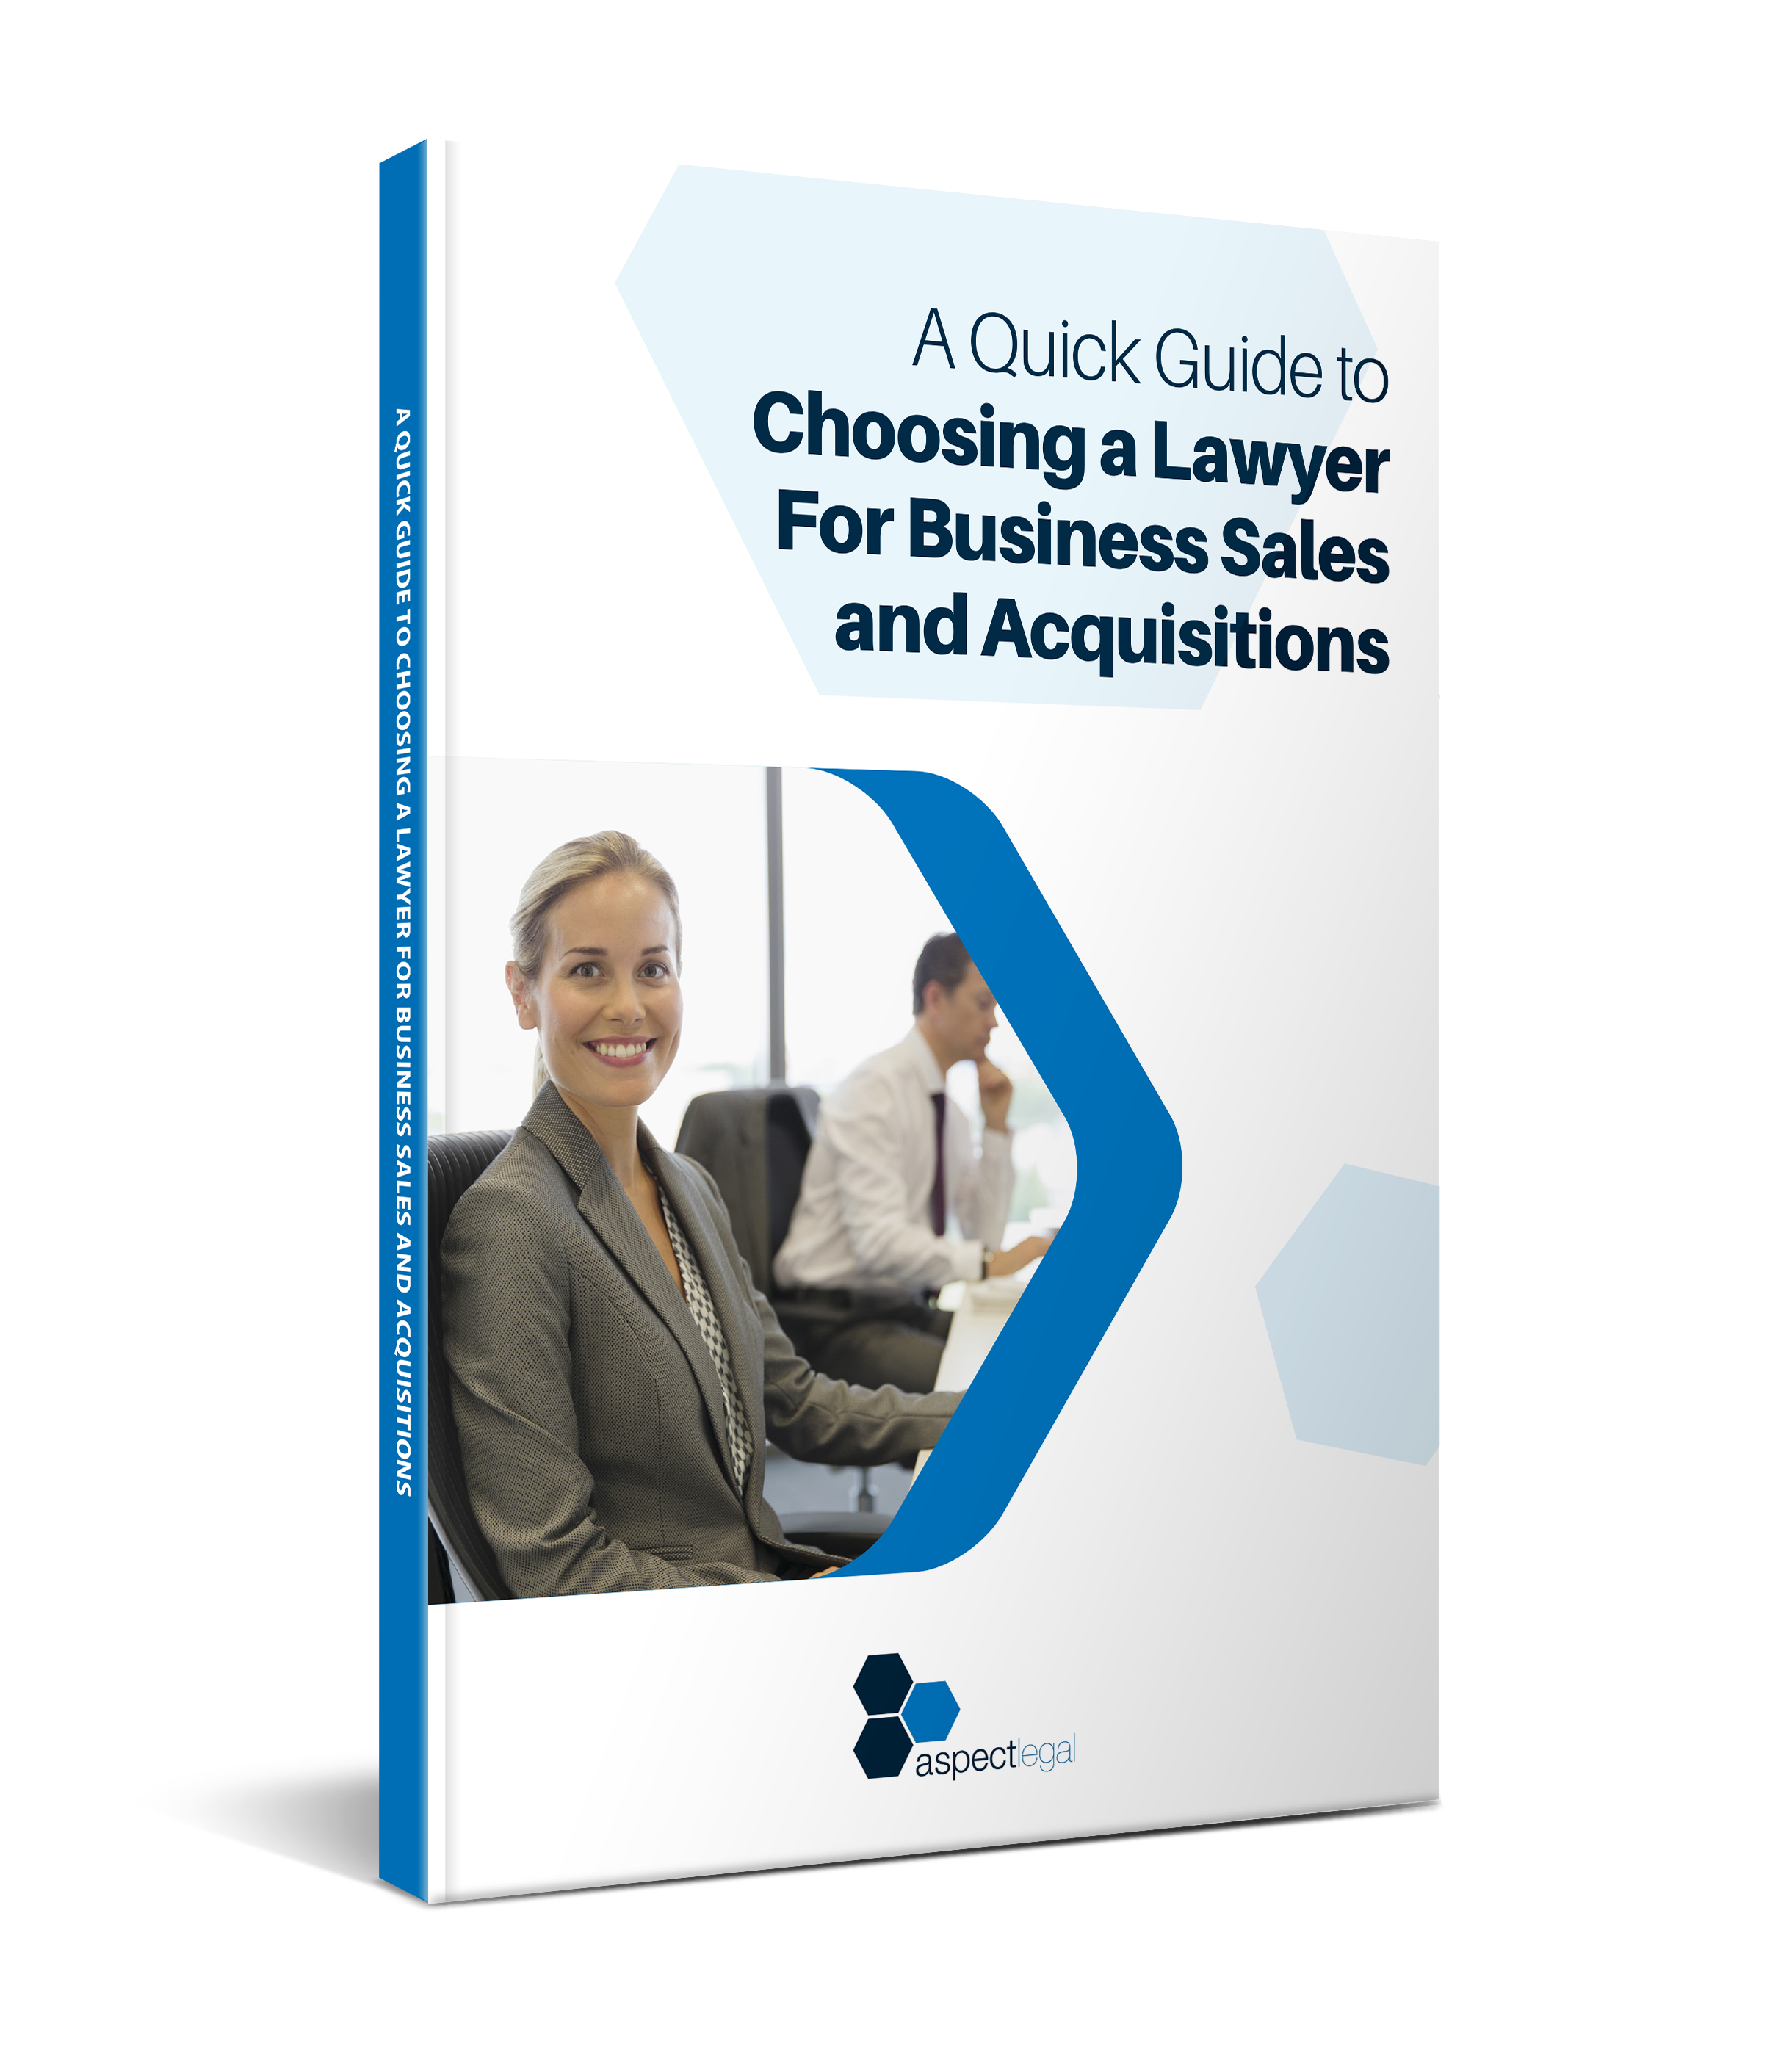 A quick guide to choosing a lawyer for business sales & acquisitions